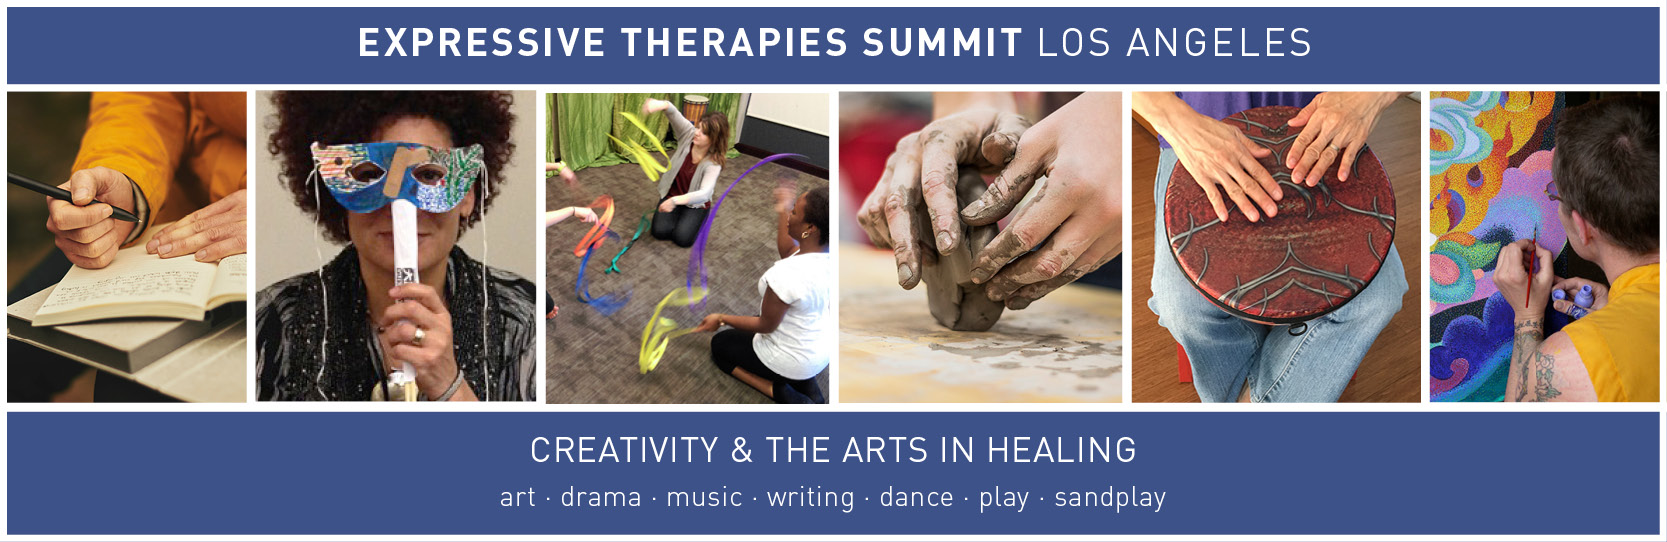 Expressive Therapies Summit: Los Angeles 2021 Registration Site